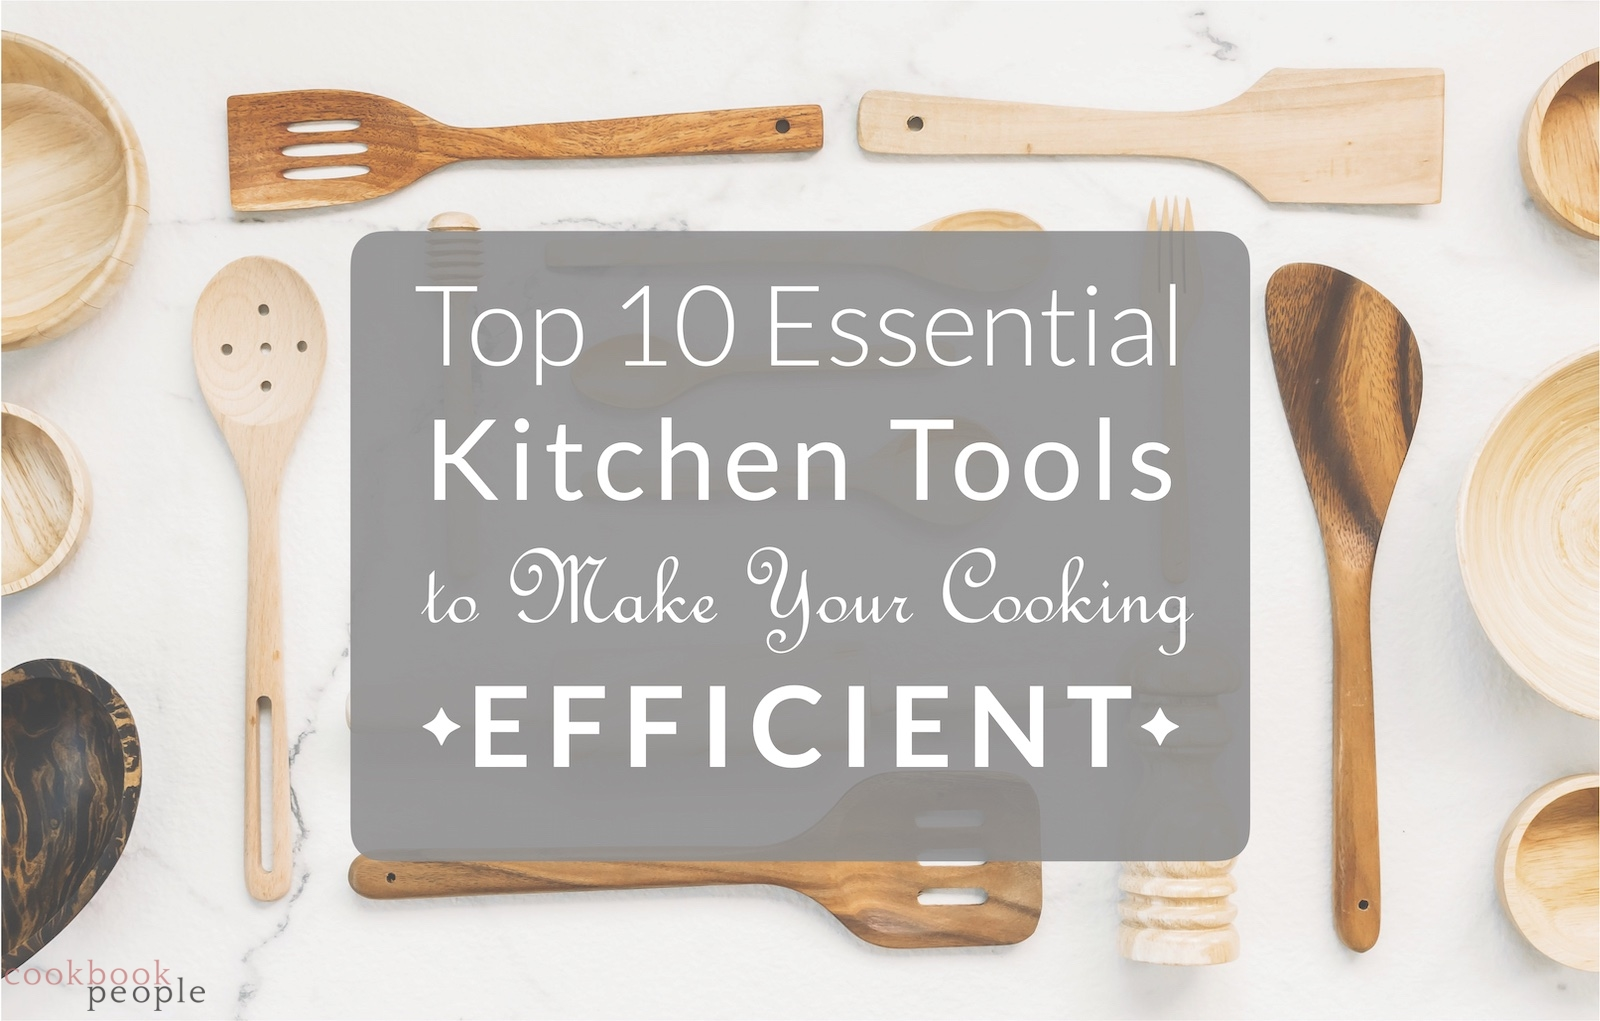 Wooden kitchen utensils on marble surface overlaid with text: Top 10 Essential Kitchen Tools to Make Your Cooking Efficient